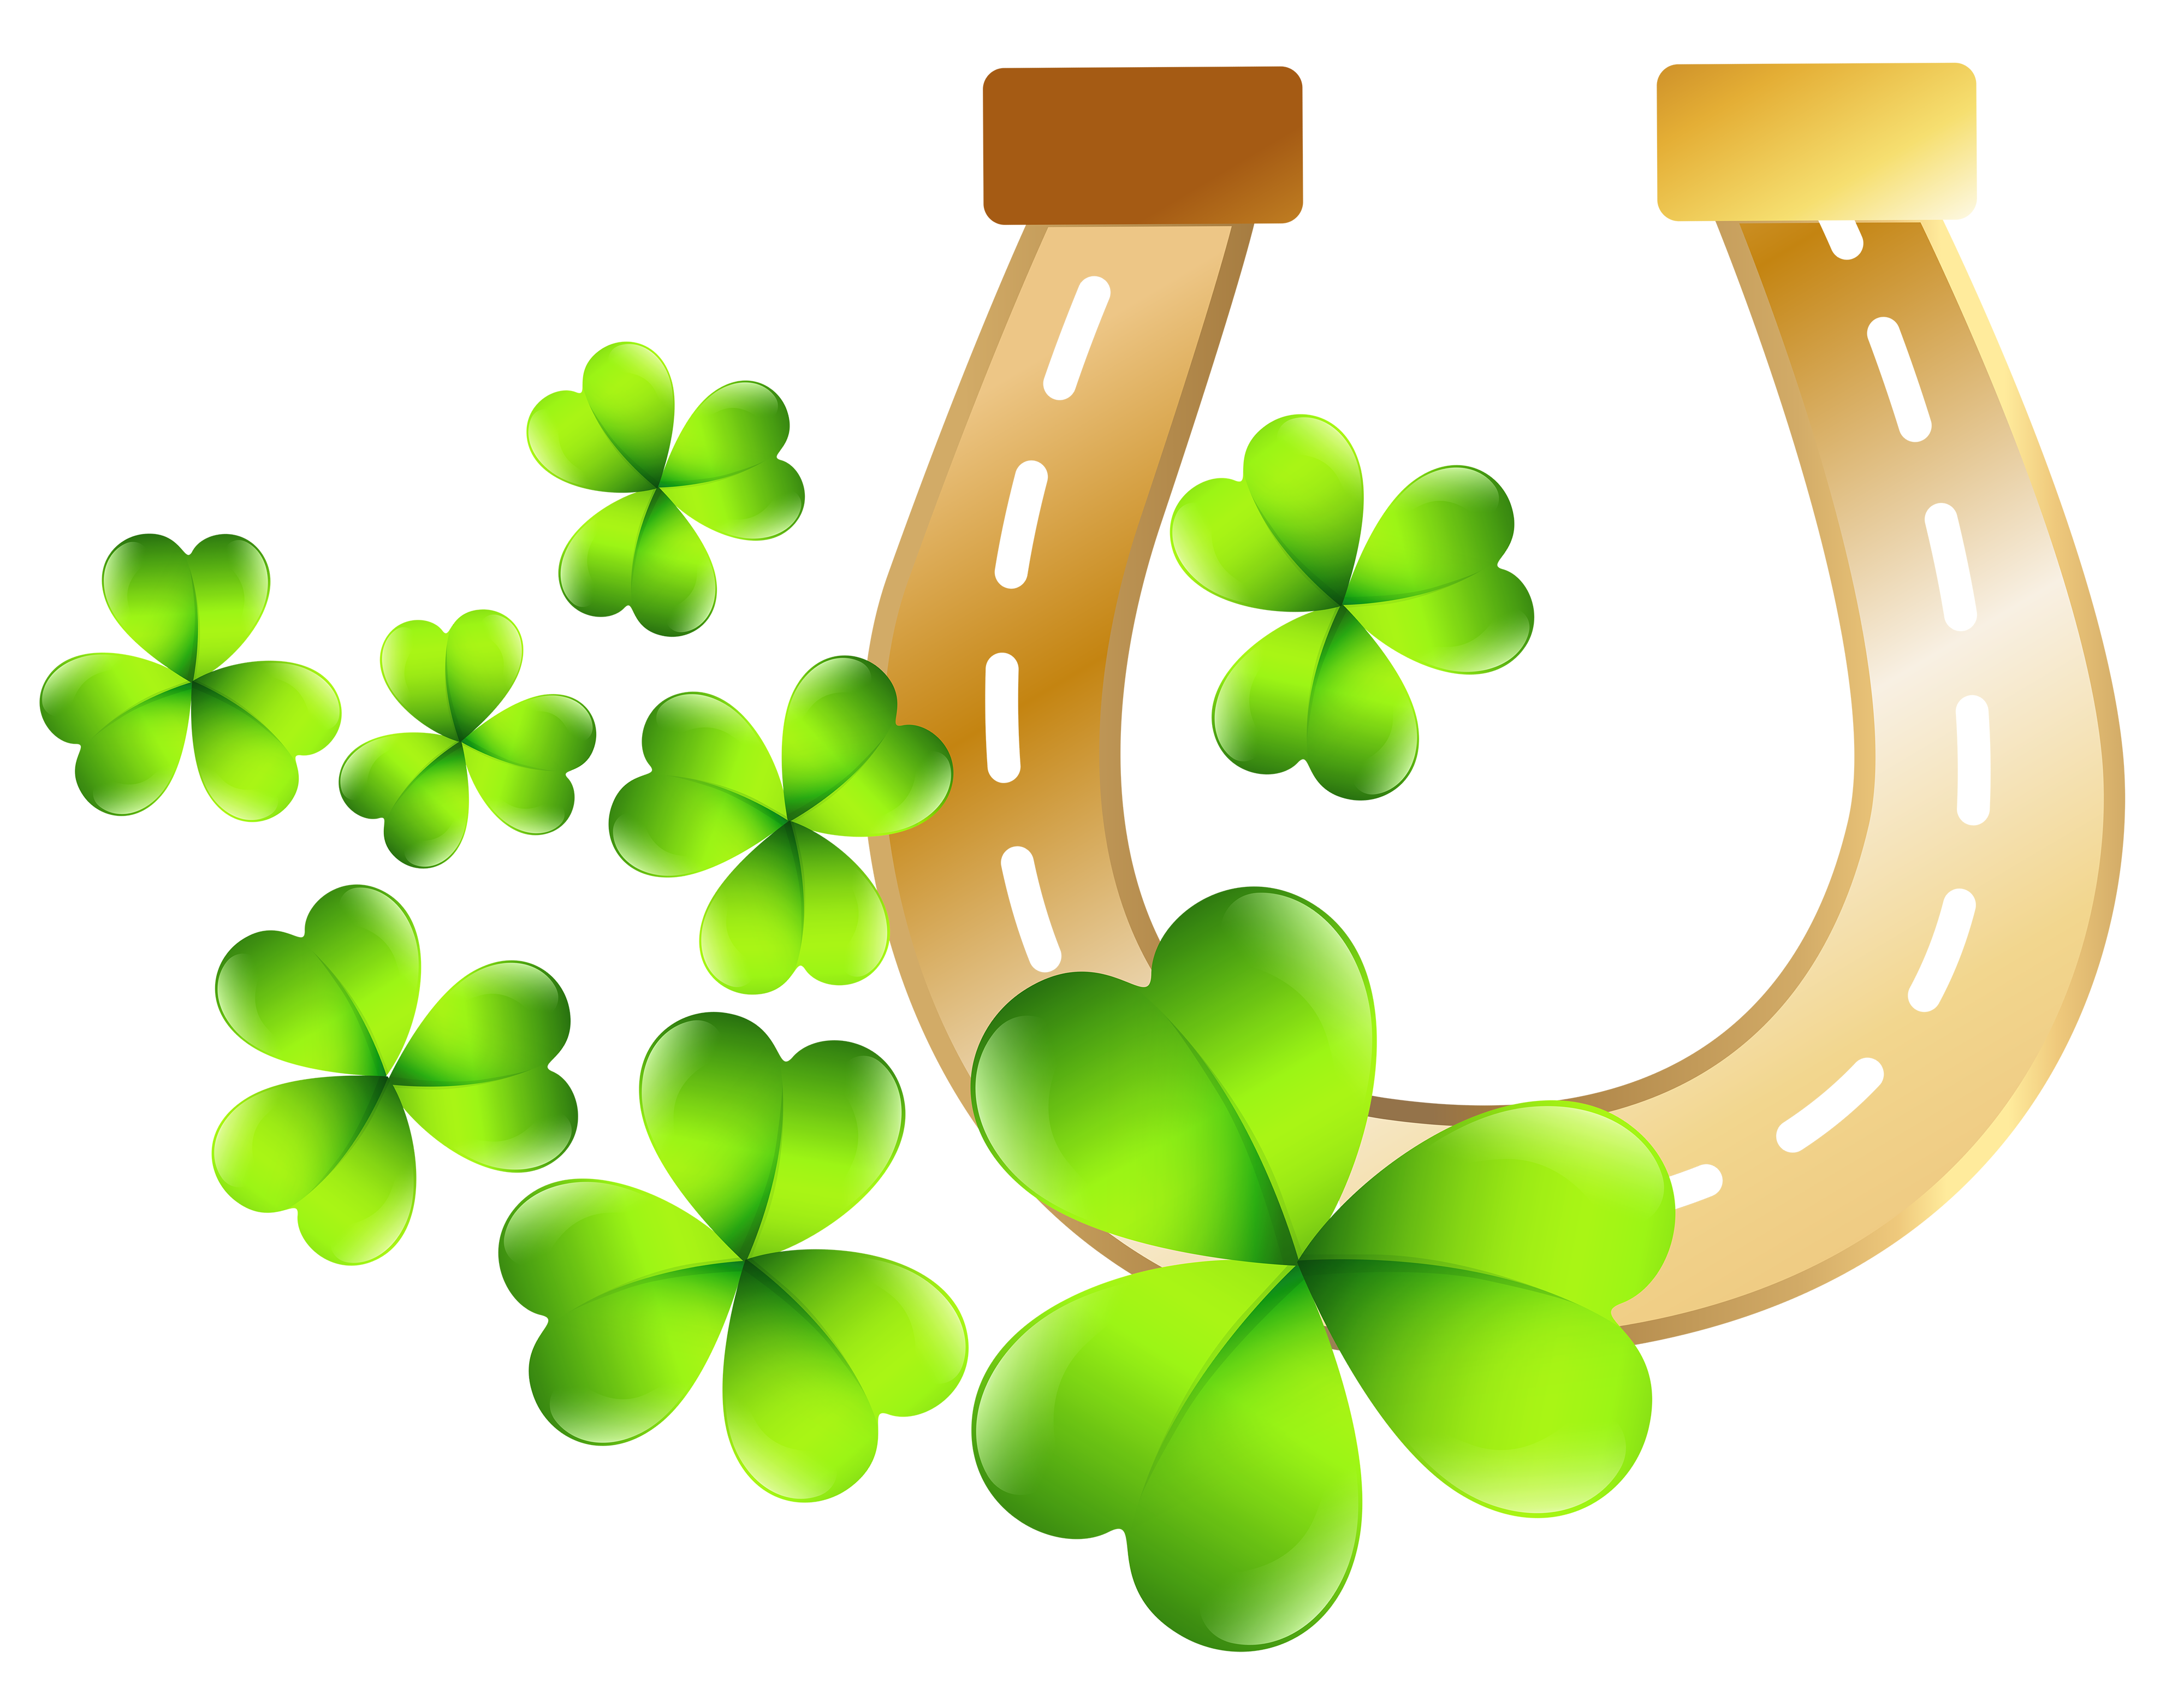 St patty-s day free clipart clipart freeuse library St Patrick\'s Day Horseshoe PNG Clip Art Image | Gallery ... clipart freeuse library